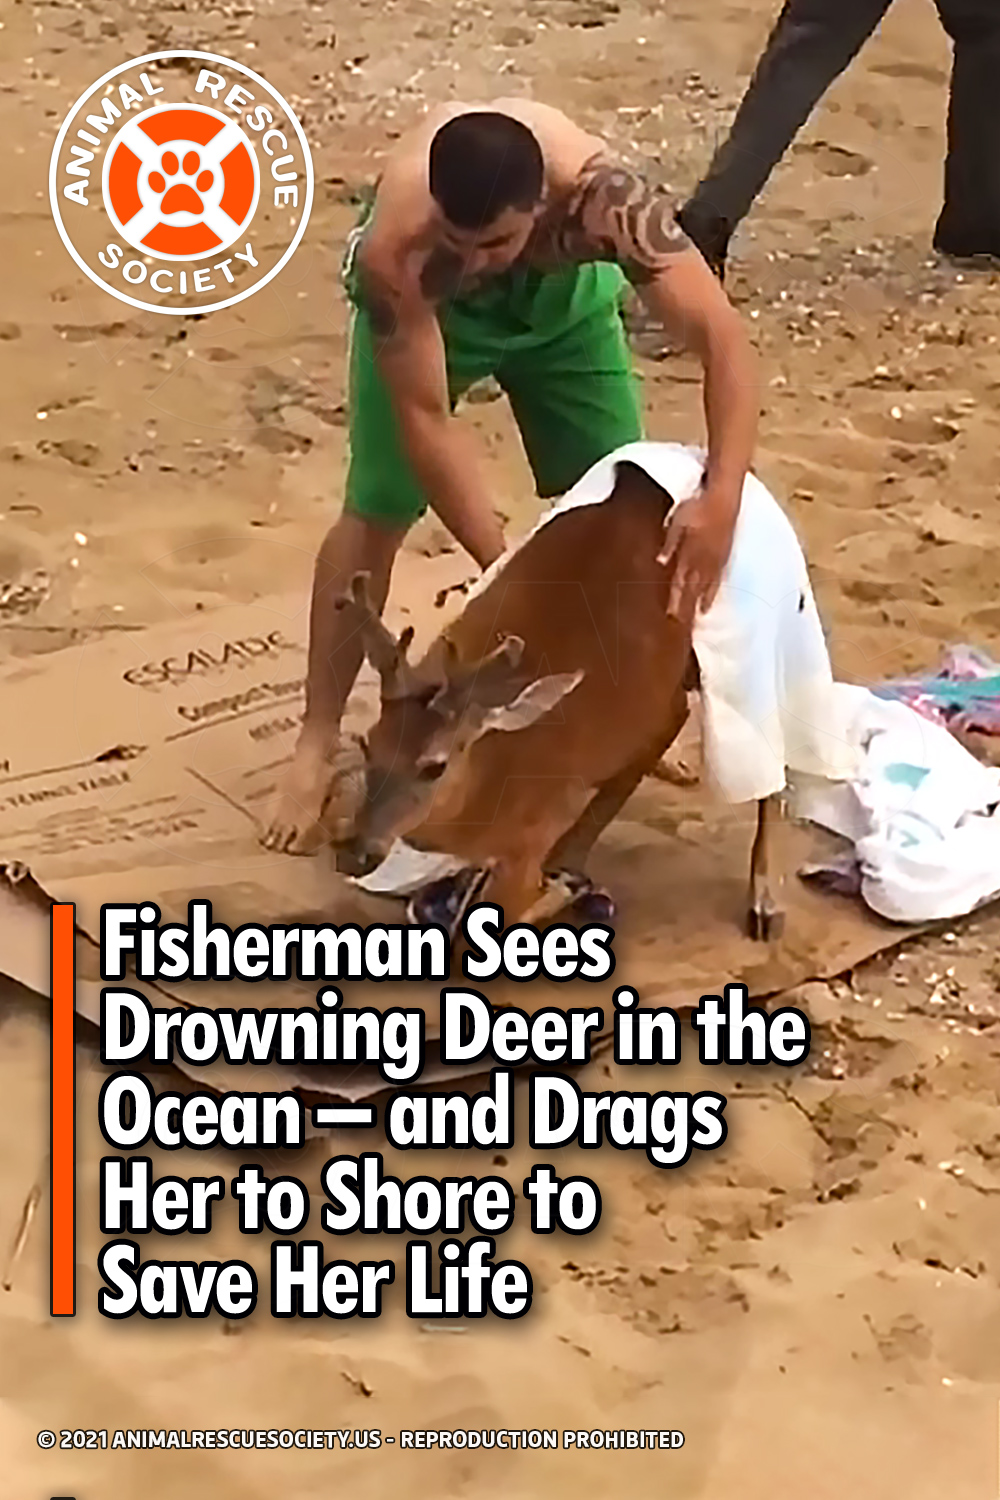 Fisherman Sees Drowning Deer in the Ocean – and Drags Her to Shore to Save Her Life